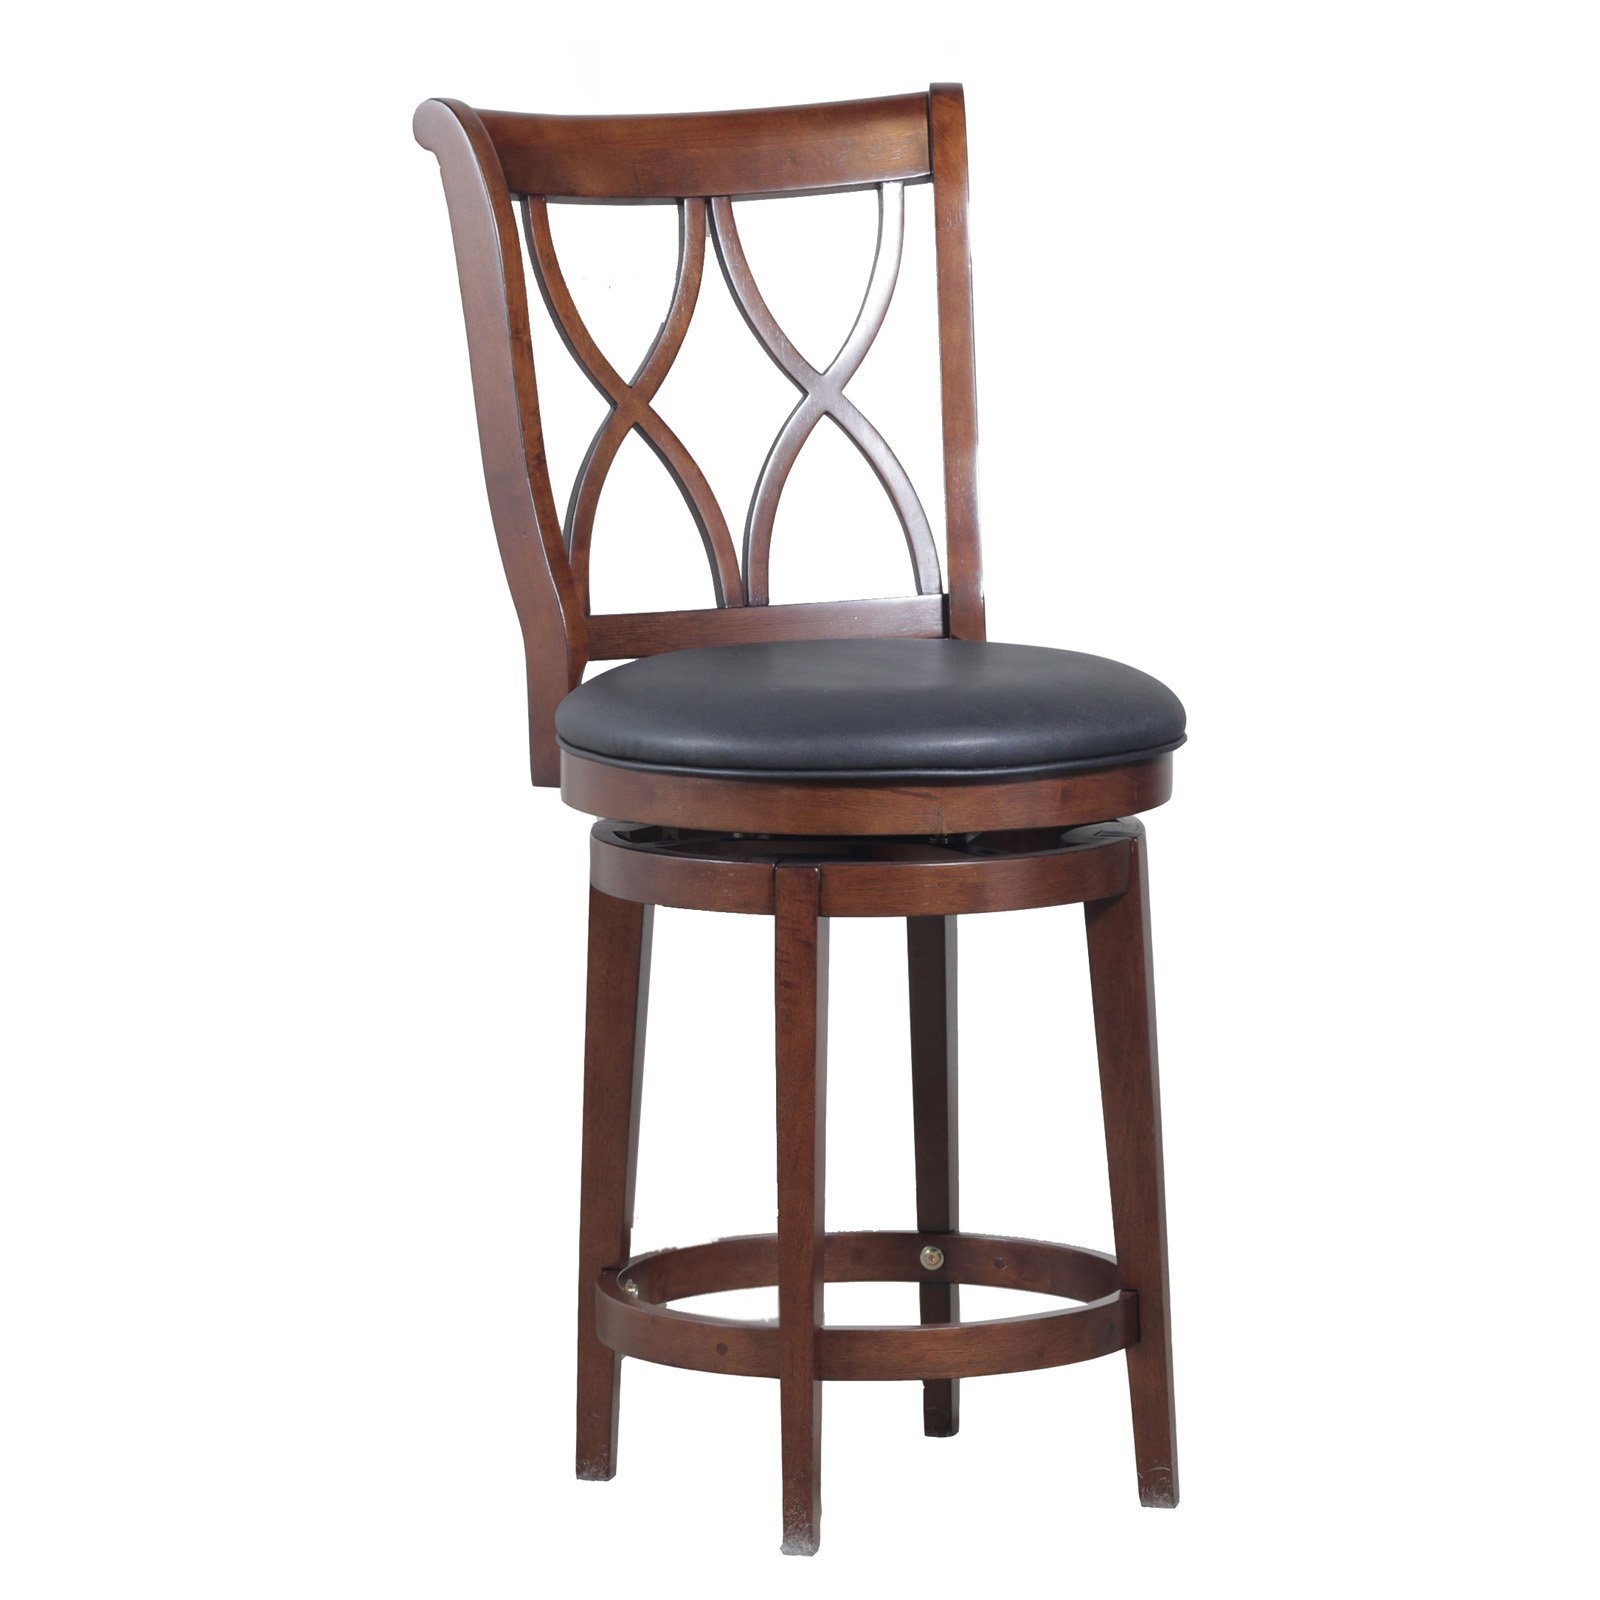 Powell Big & Tall Carmen Counter Stool, Rustic Oak by Powell Furniture